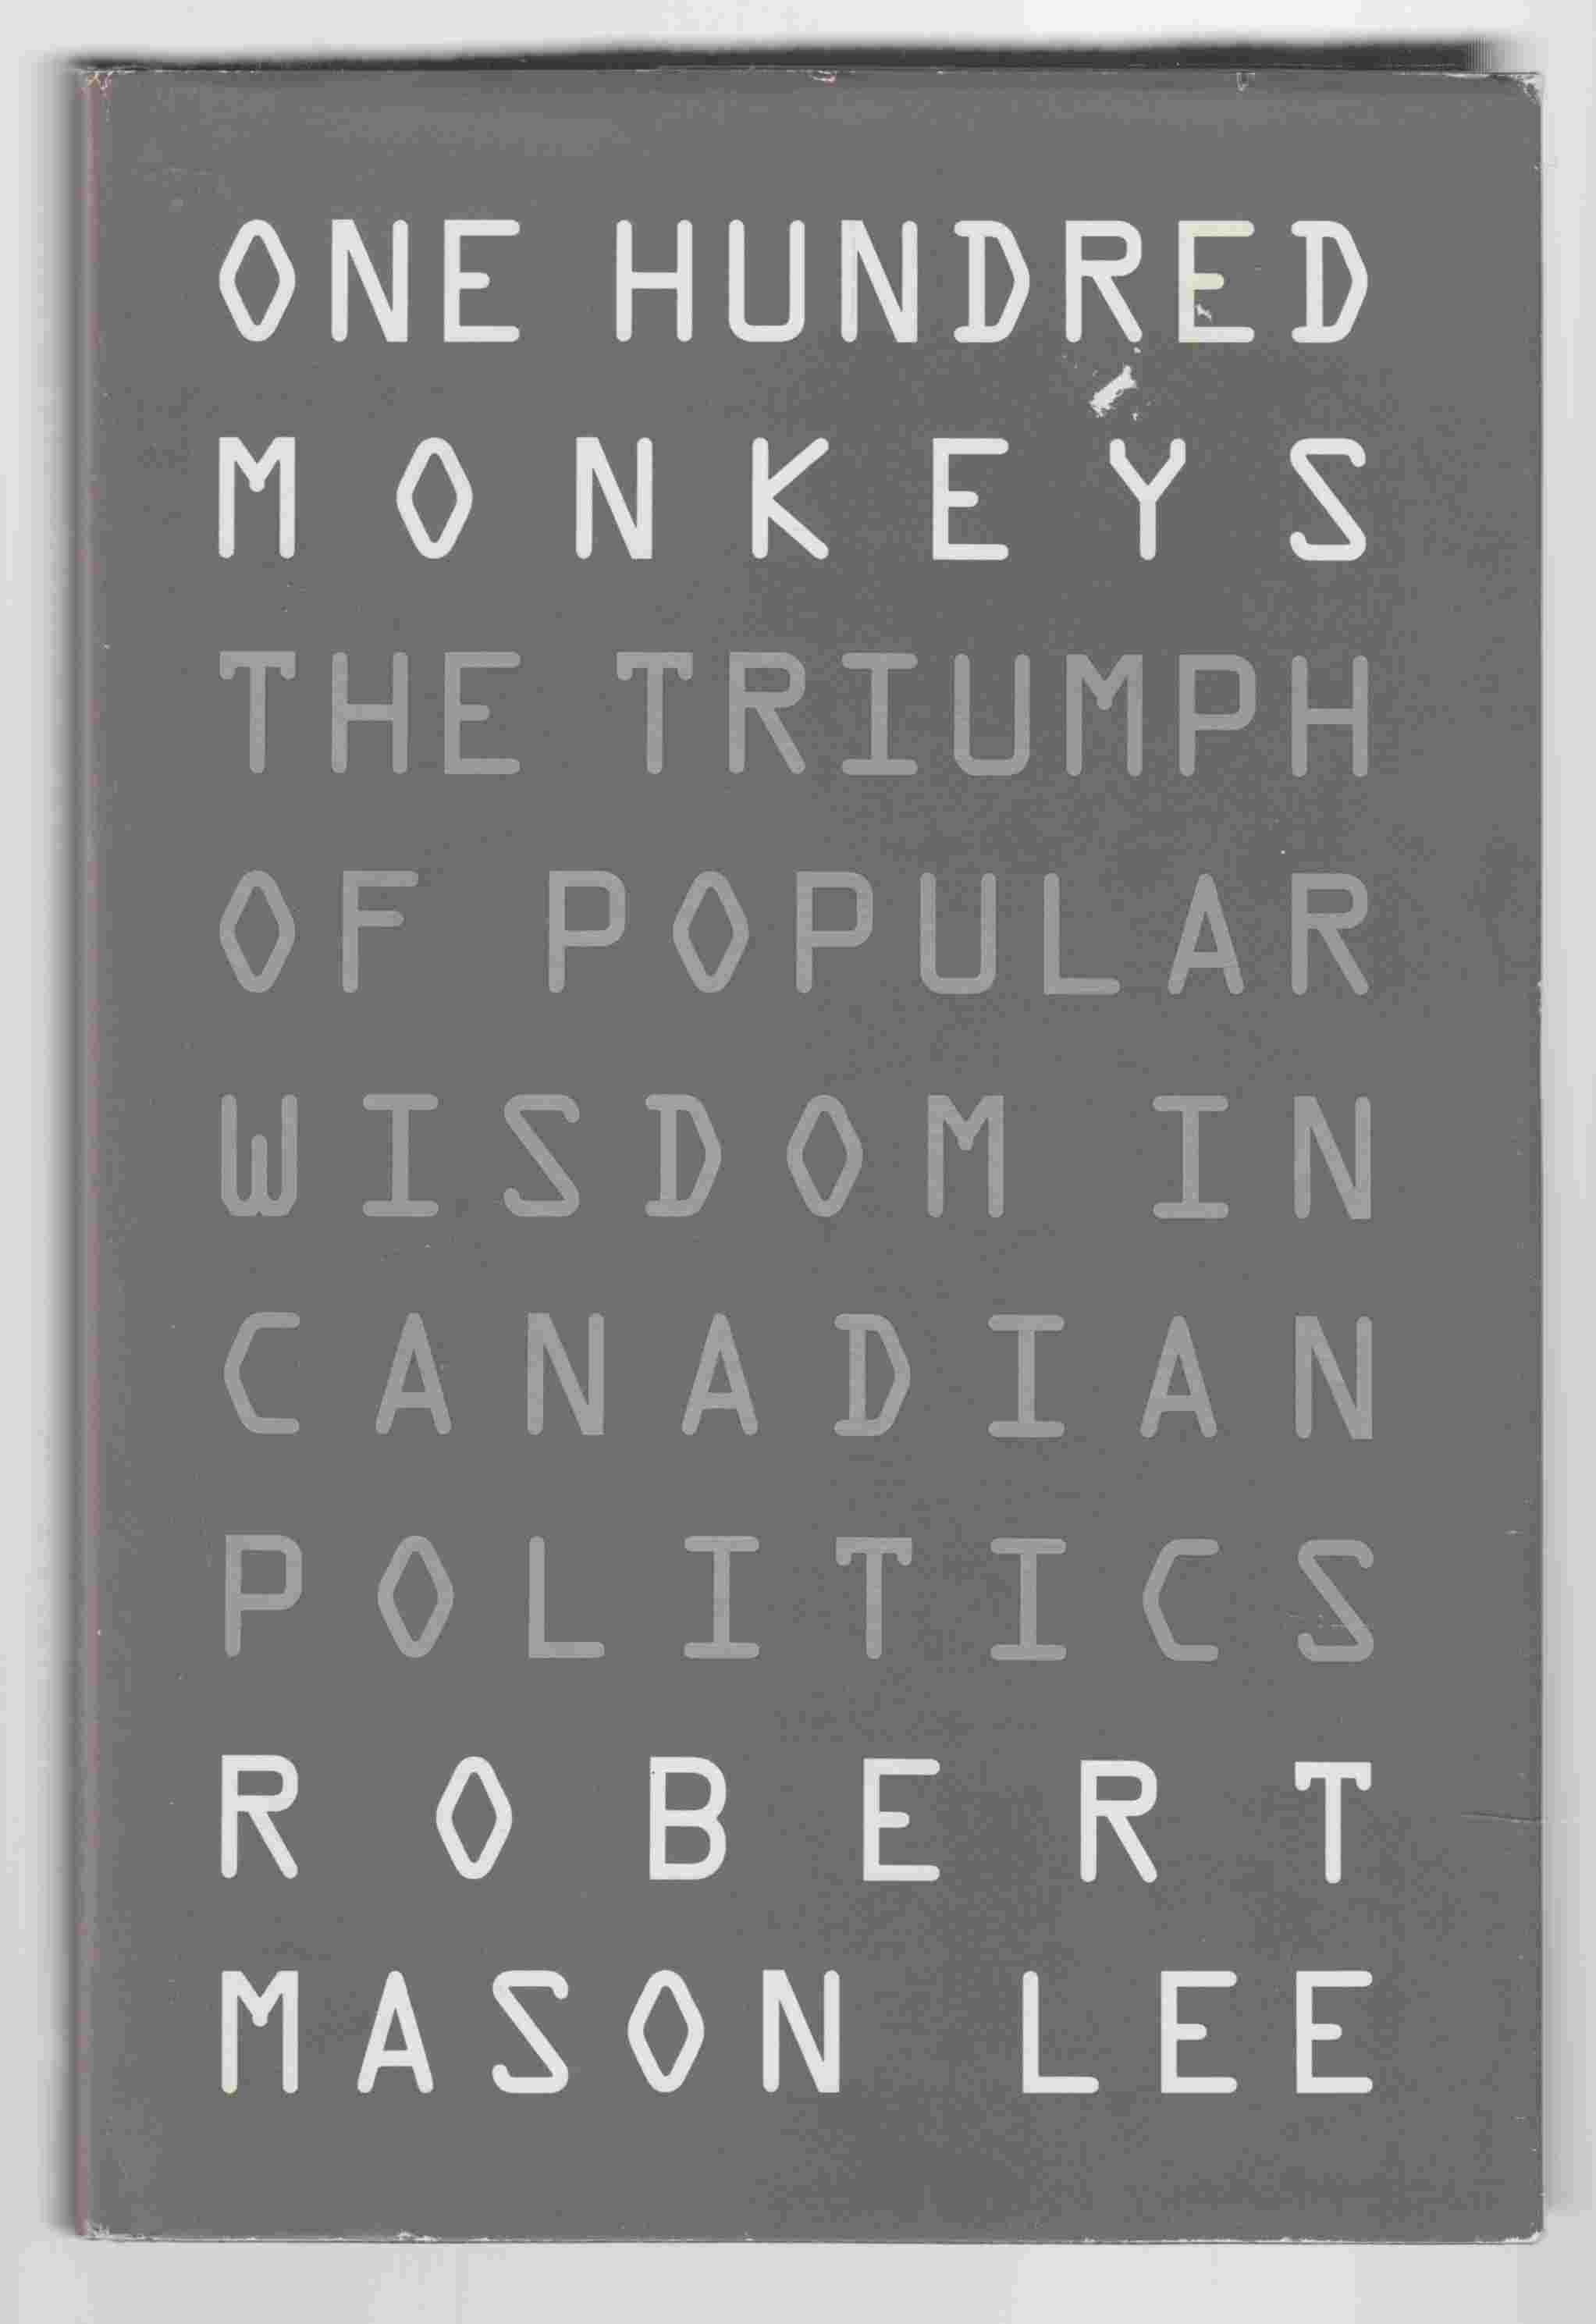 Image for One Hundred Monkeys The Triumph of Popular Wisdom in Canadian Politics